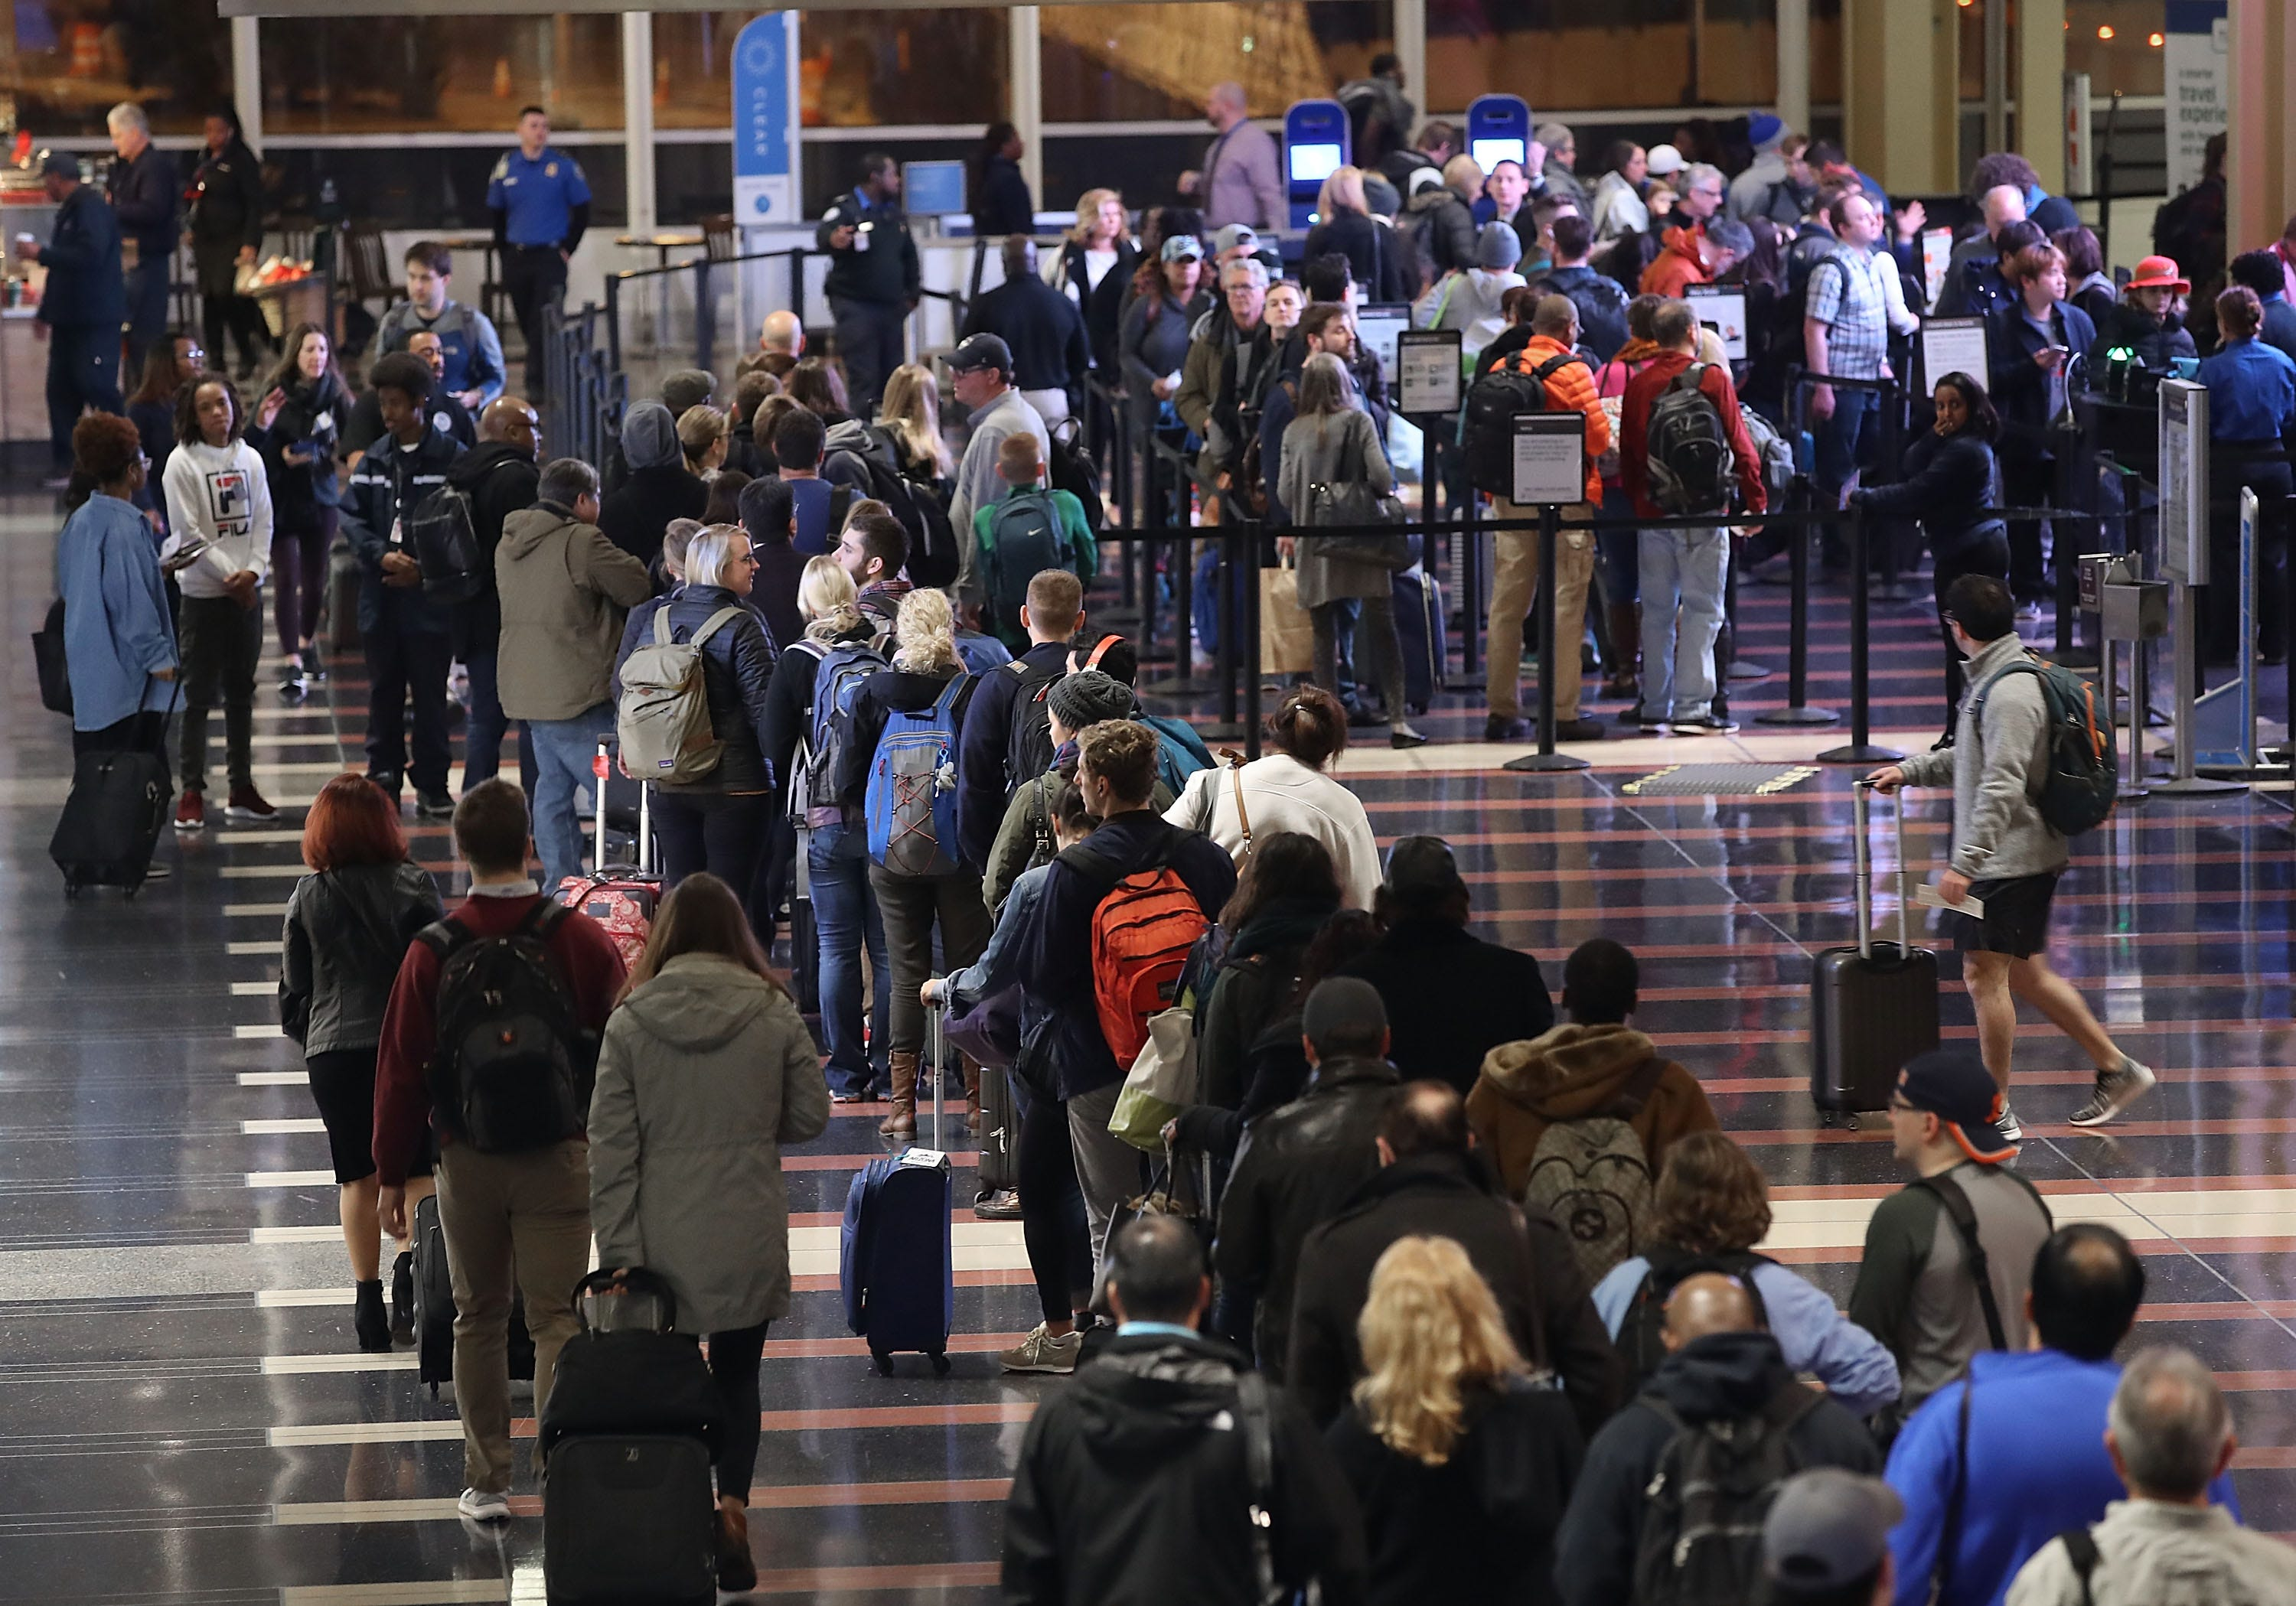 4,800+ flights delayed, 840+ canceled ahead of busy Easter, Passover travel weekend